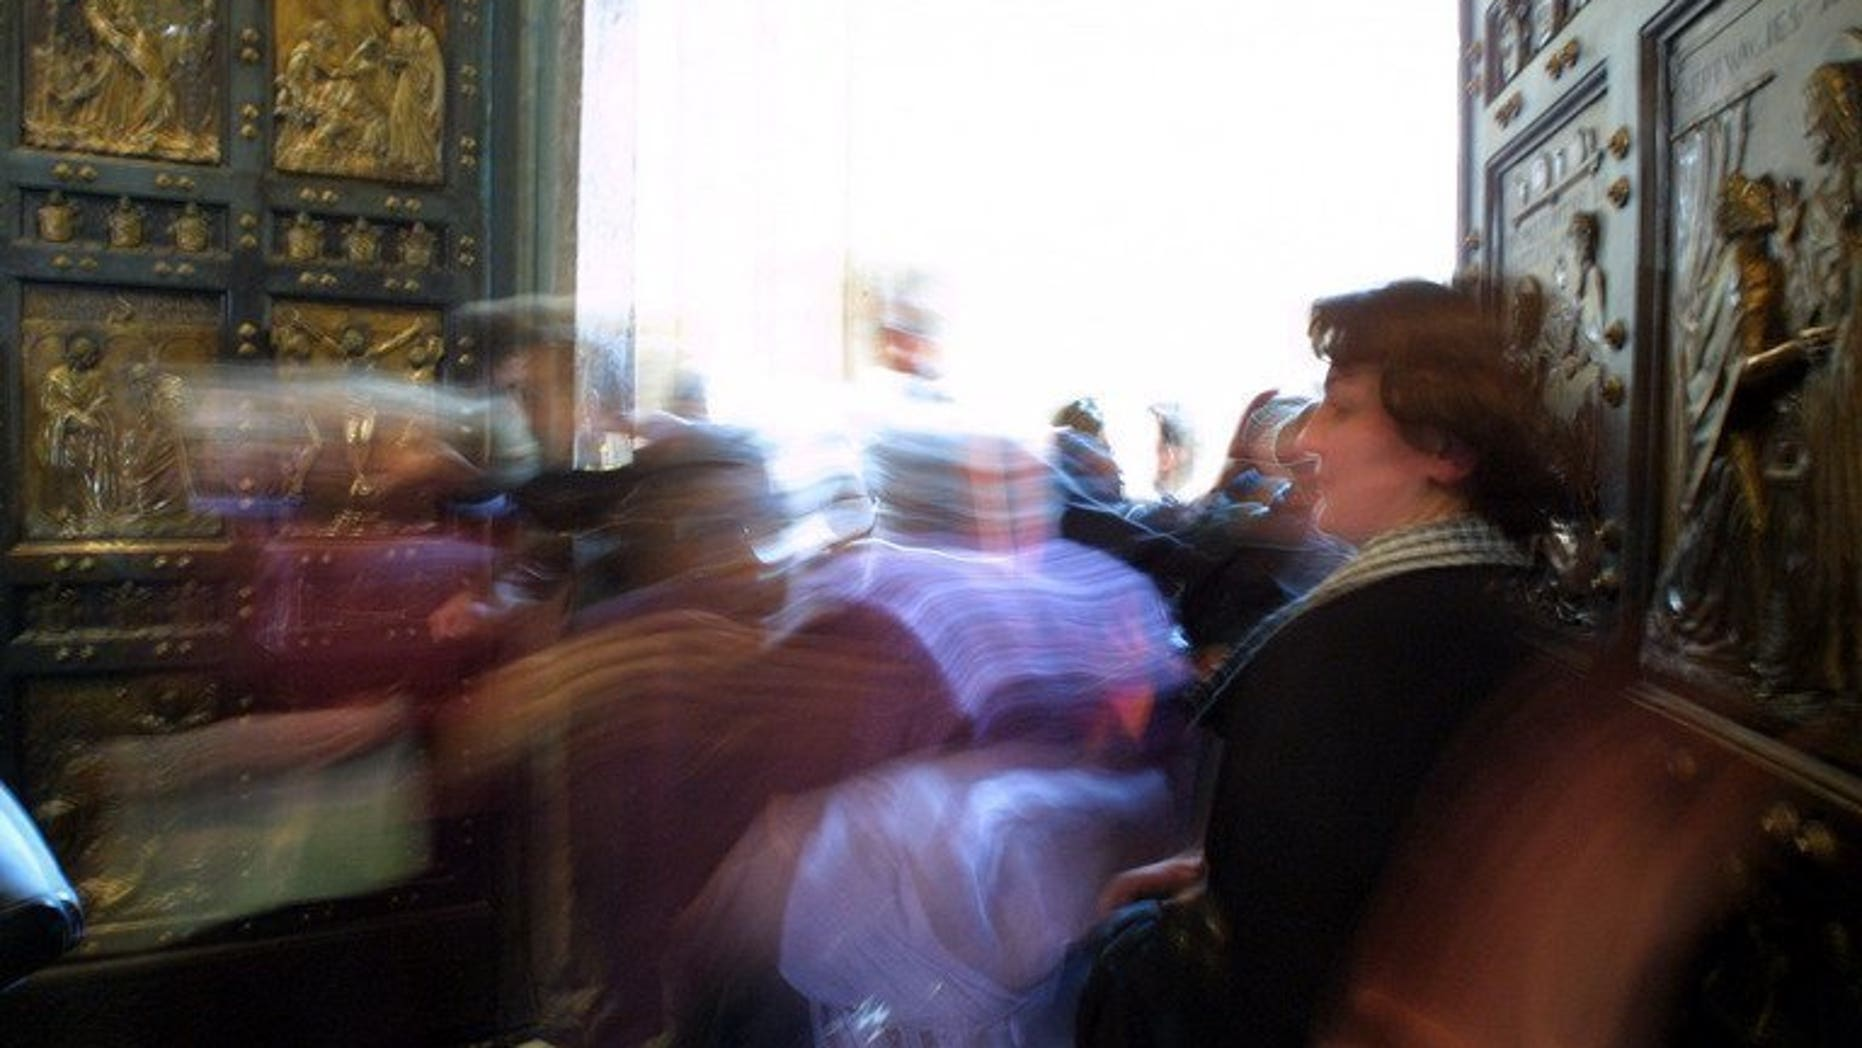 Pilgrims cross the Holy Door in Saint Peter's Basilica, Rome, January 5, 2001. The first Holy door outside of Europe will soon grace one of the oldest Catholic parishes in North America, in the Canadian province of Quebec, a church official told AFP on Wednesday.